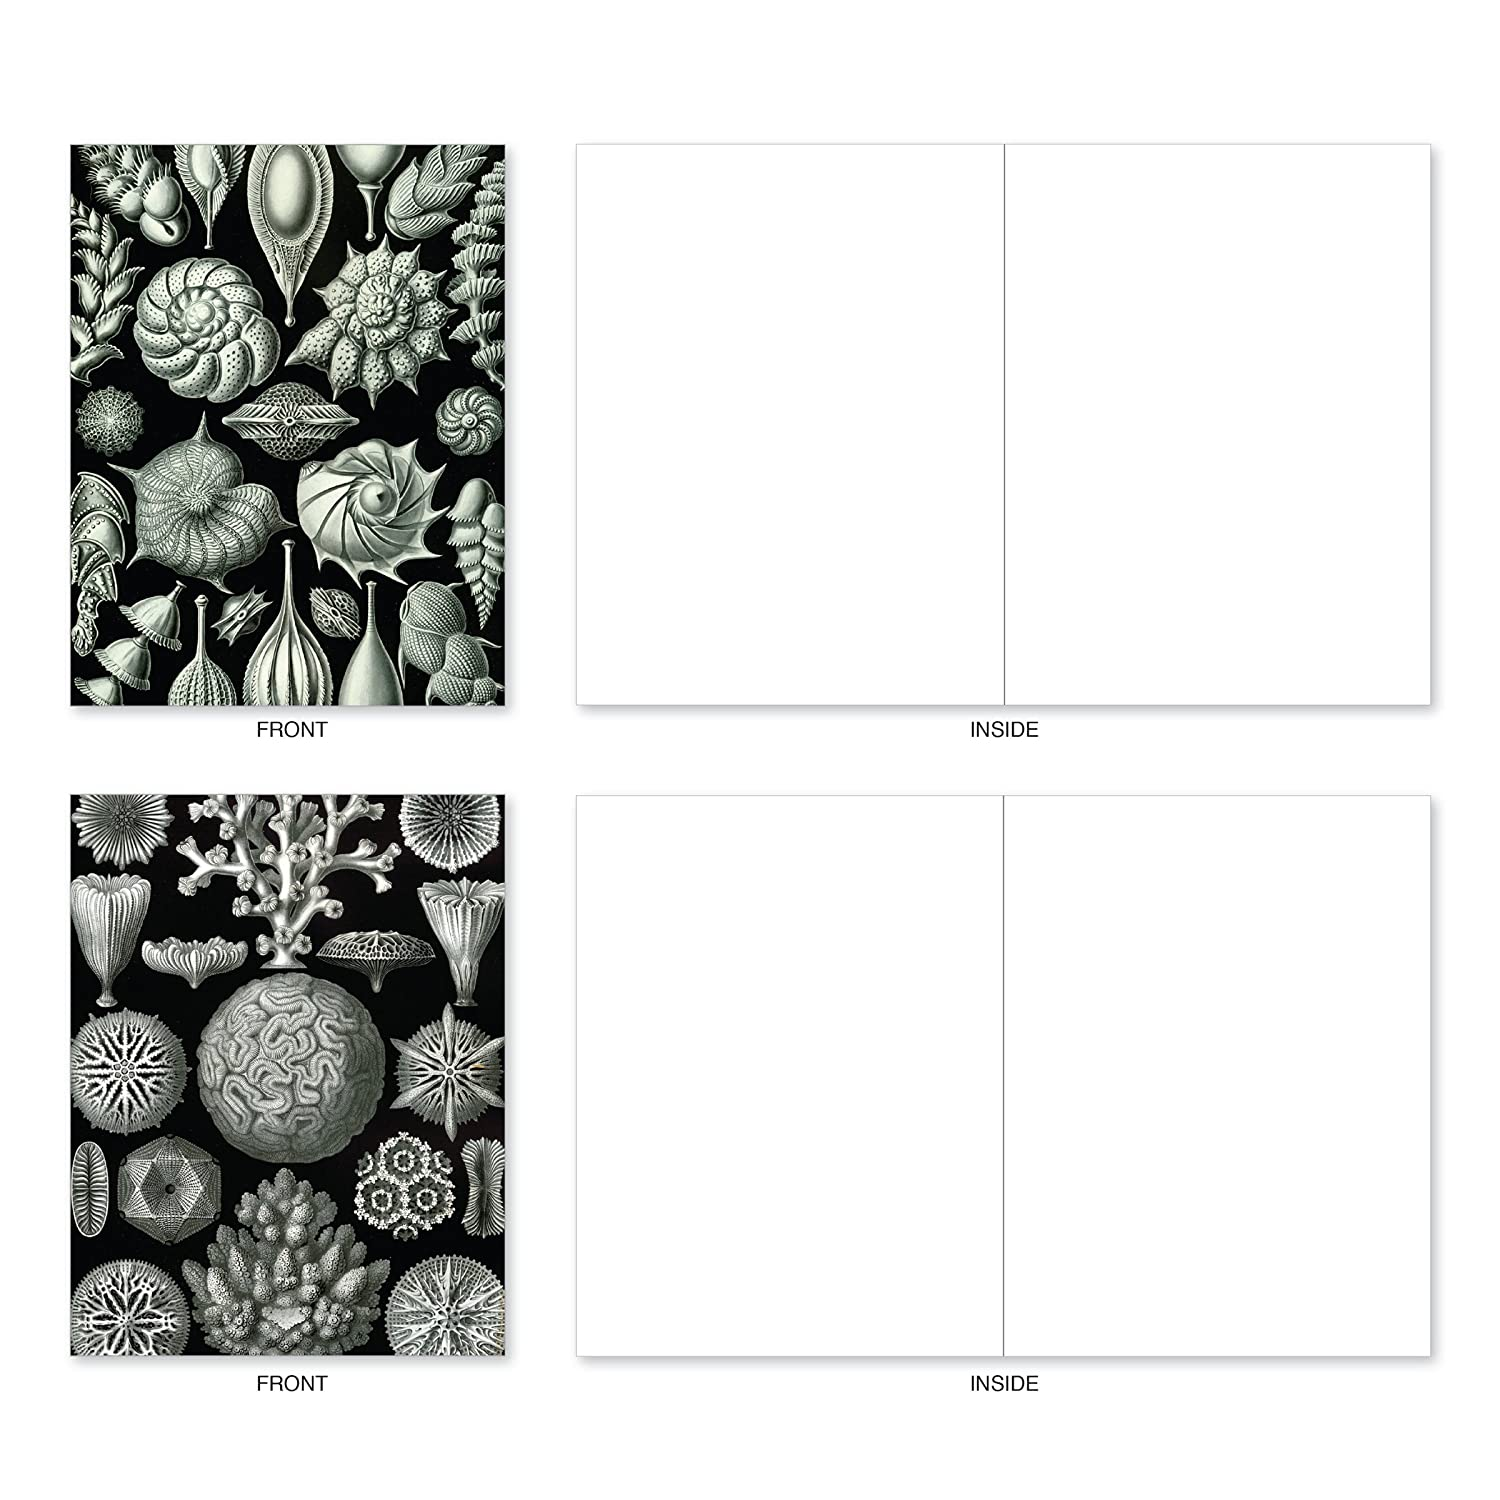 10 Whitewoods Greeting Cards With Envelopes Set Of Assorted Black